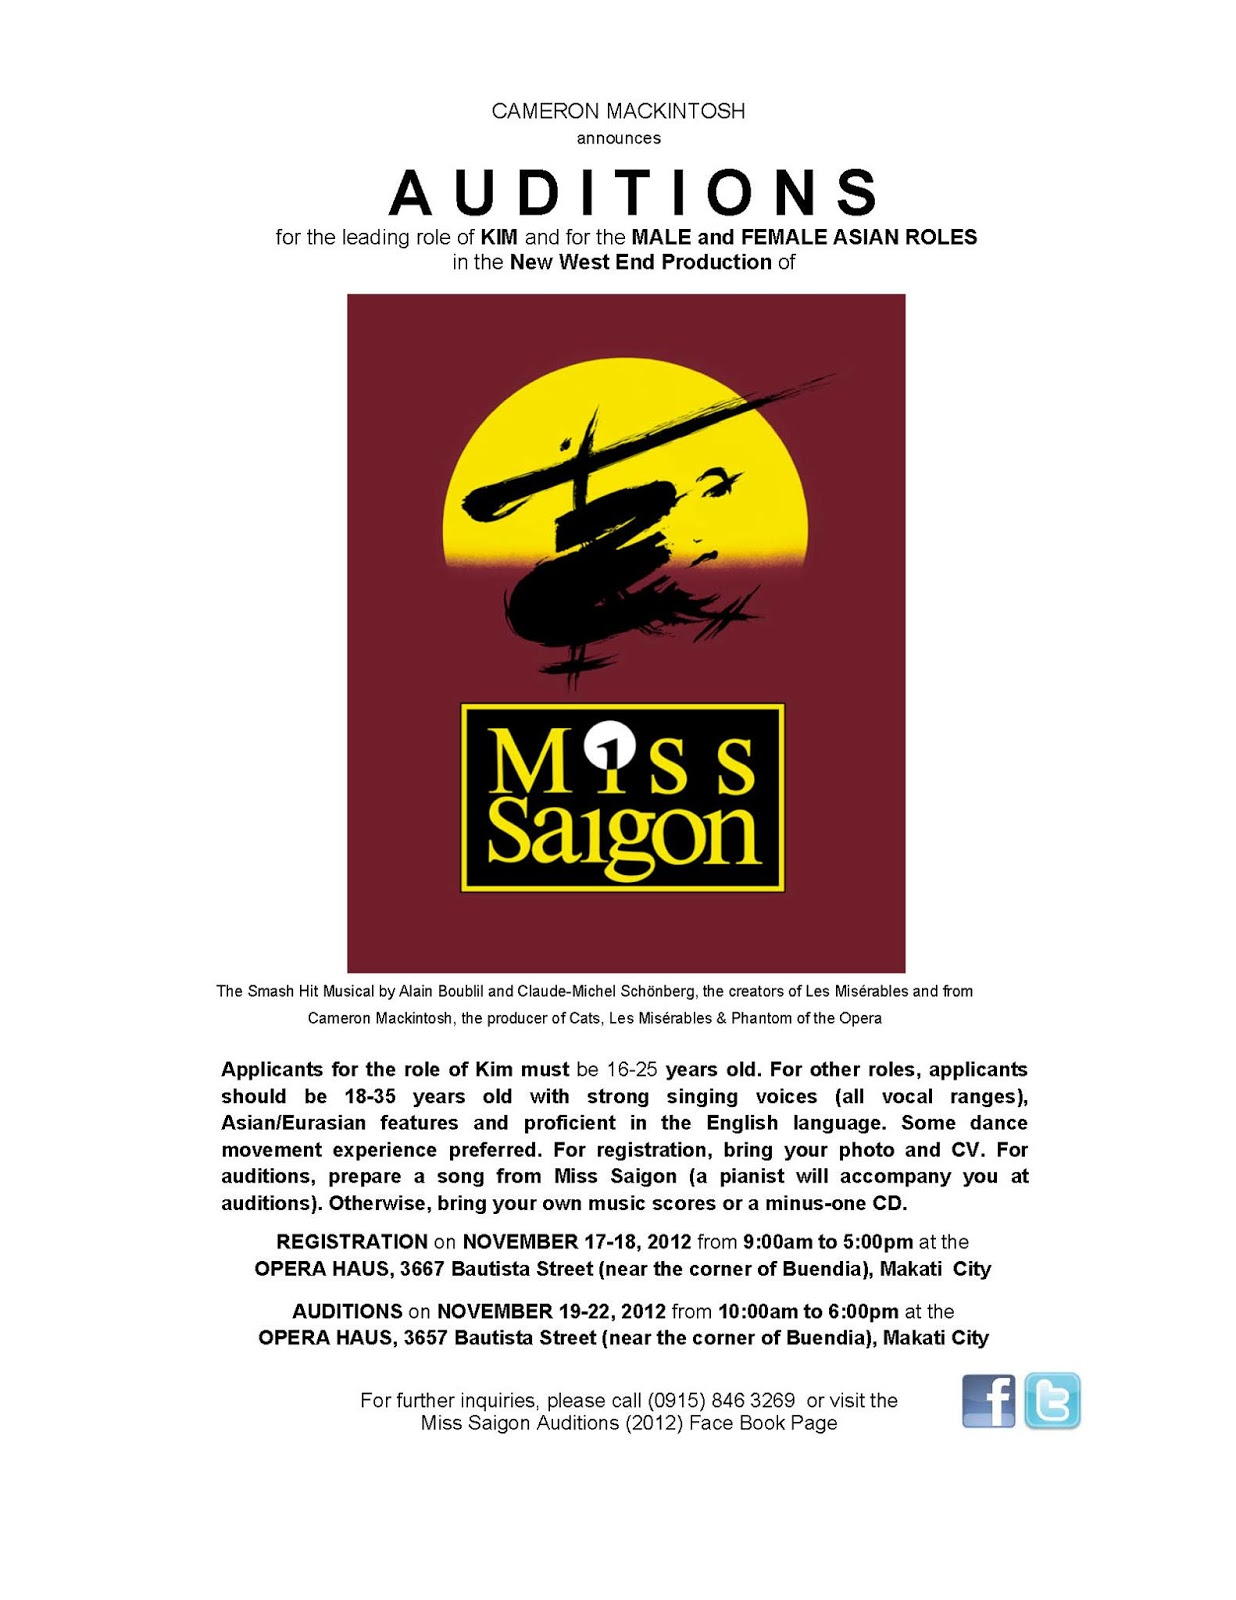 Registration Open for MISS SAIGON Auditions